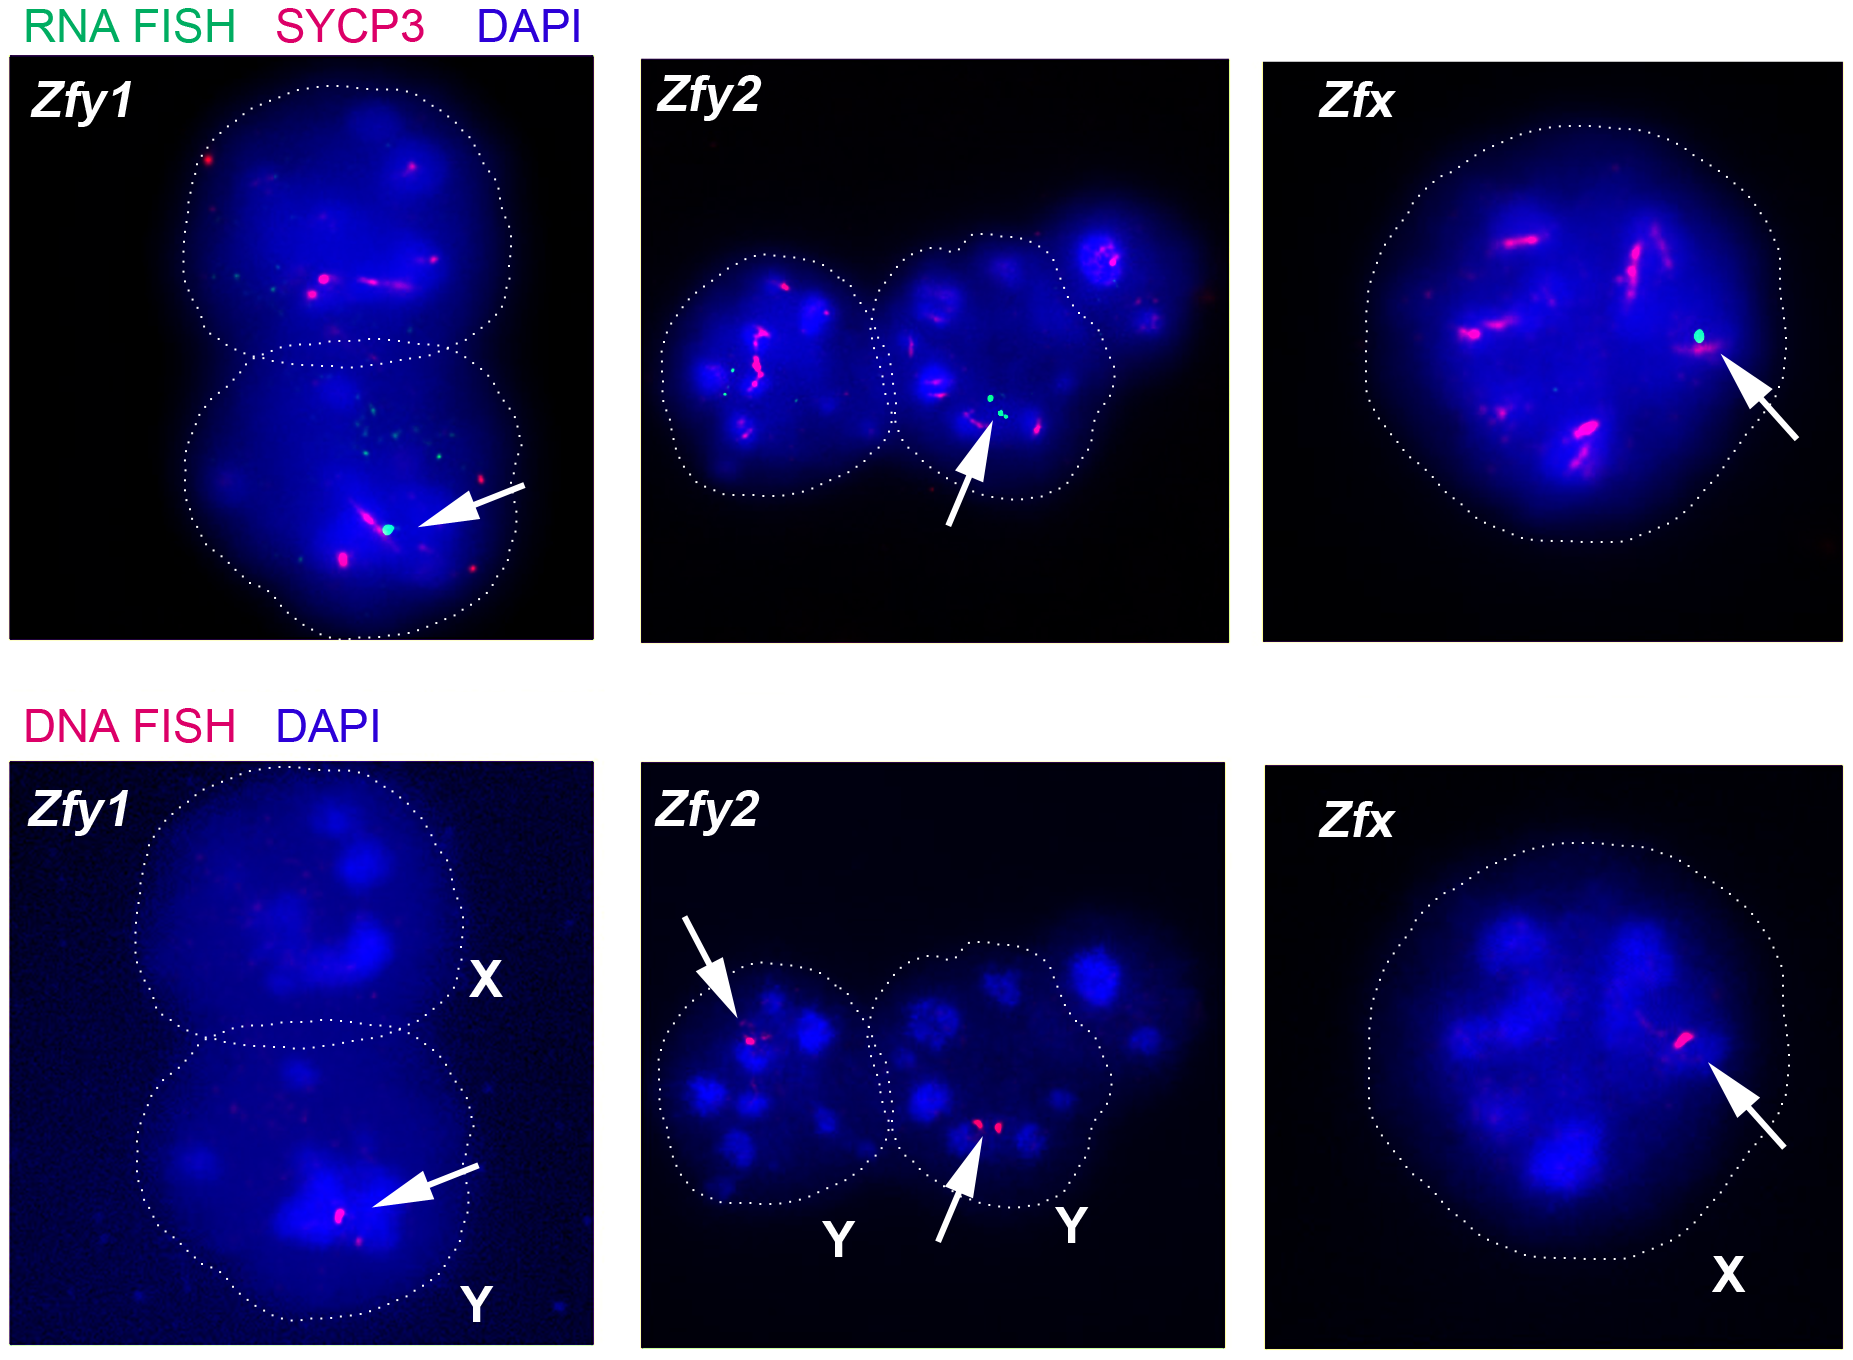 The mouse <i>Zfy</i> and <i>Zfx</i> genes are transcribed in interphasic secondary spermatocytes.